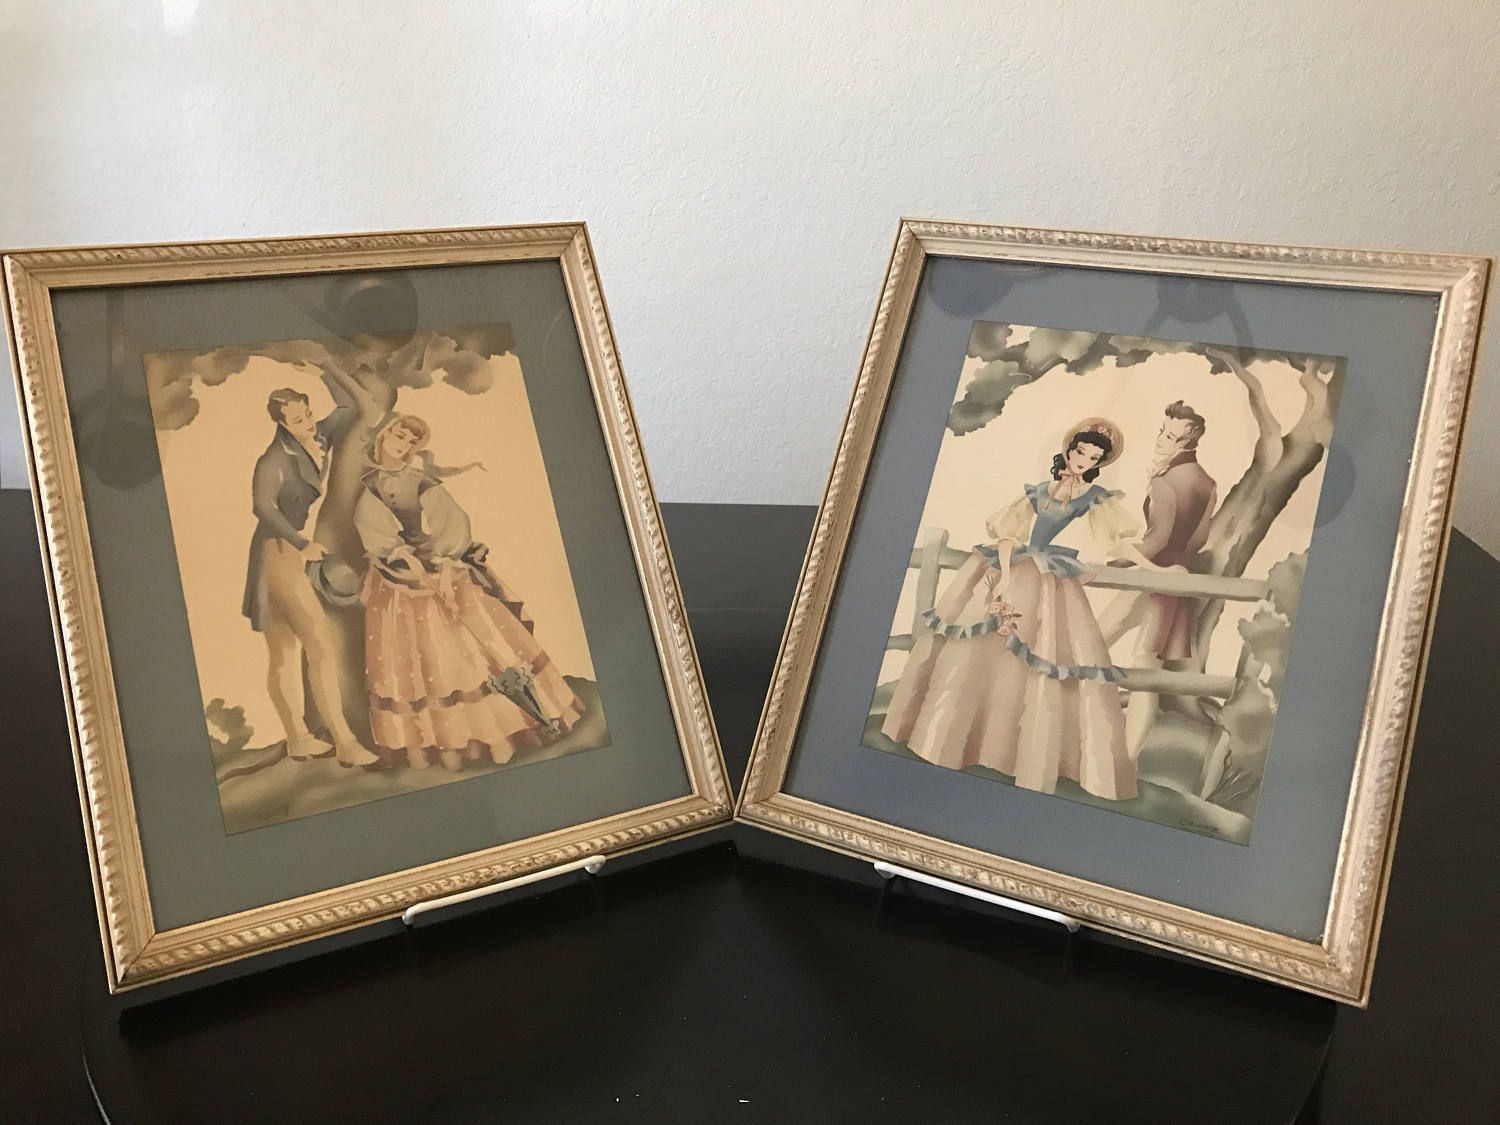 Vintage Courting Couples Art Prints Pair by Crane/ Vintage Framed Victorian Couples Prints by BazemoreVault on Etsy